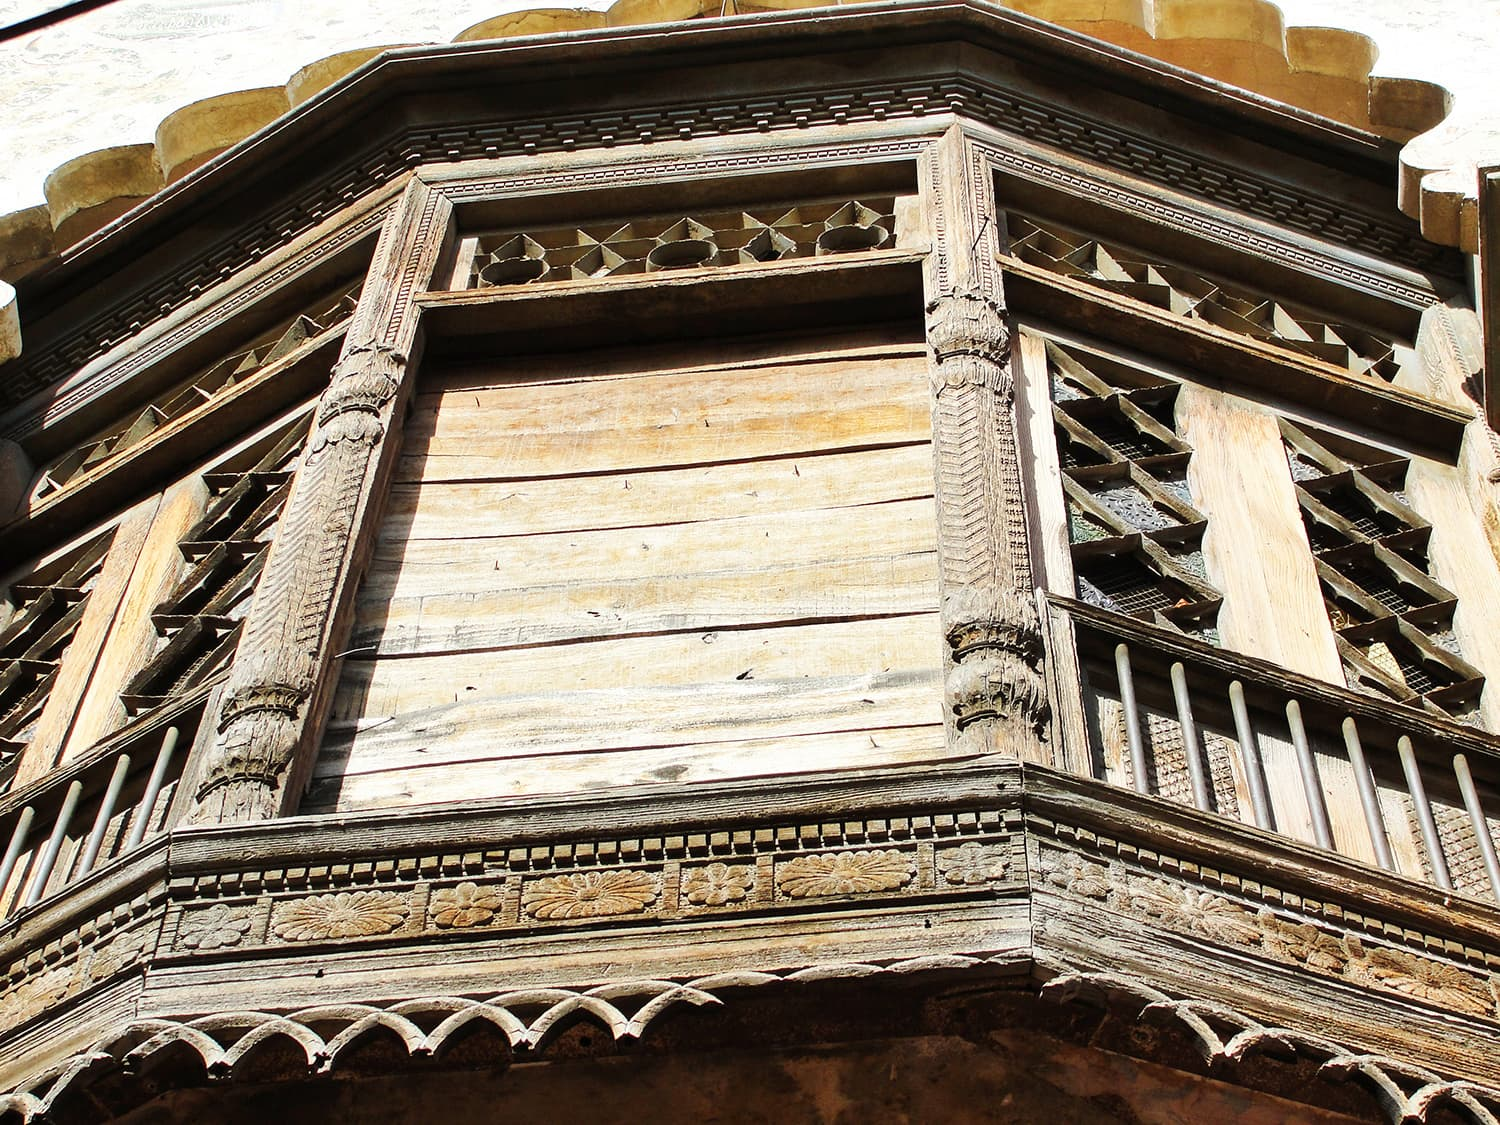 Intricate carvings on the Jharoka of Hari Mandir.